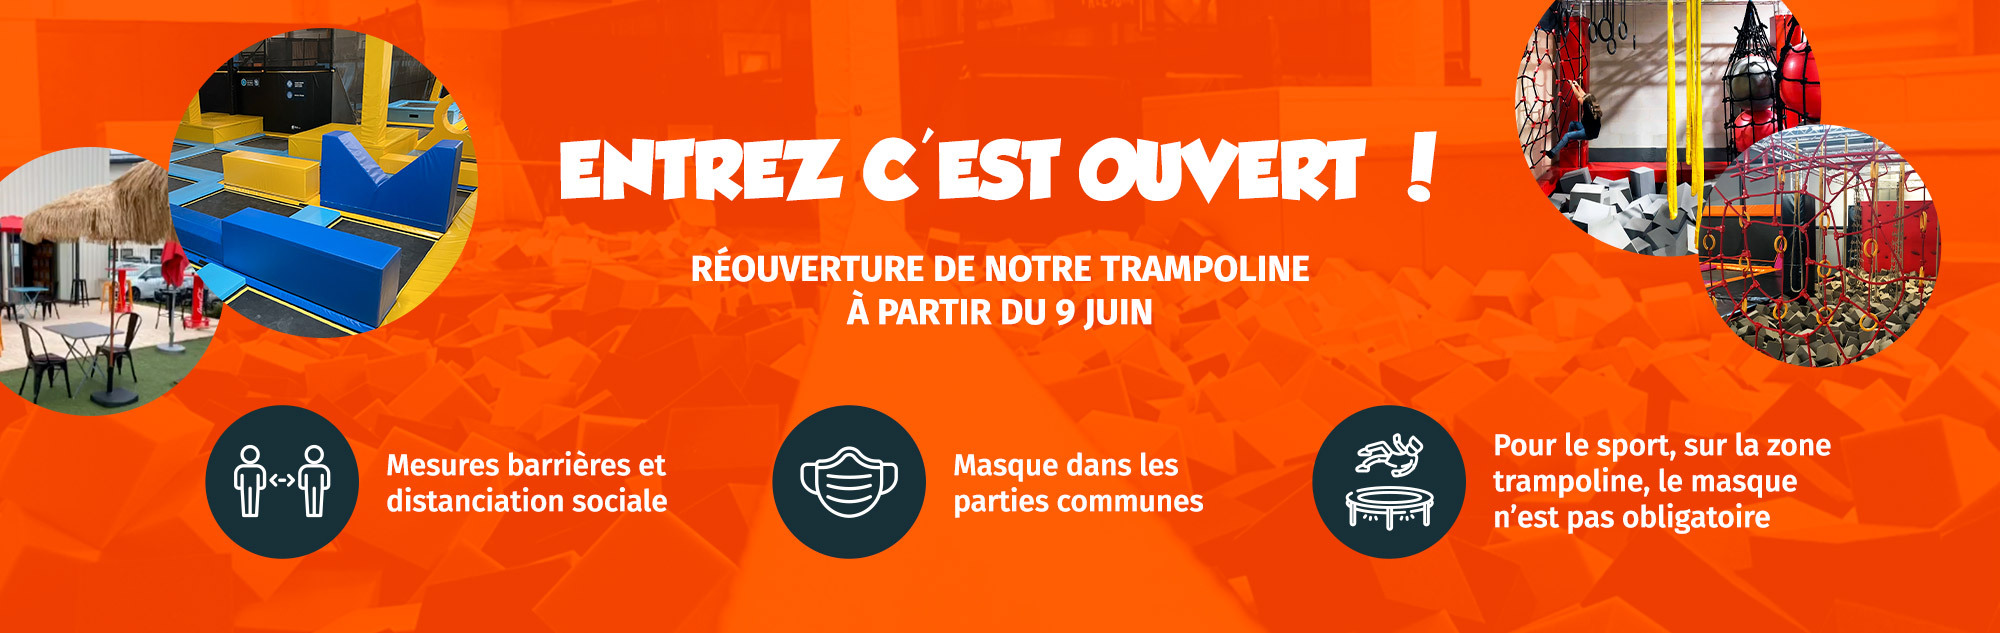 2105_TRAMPOLINE_EXPERIENCE_REOUVERTURE_HEADER_SITE